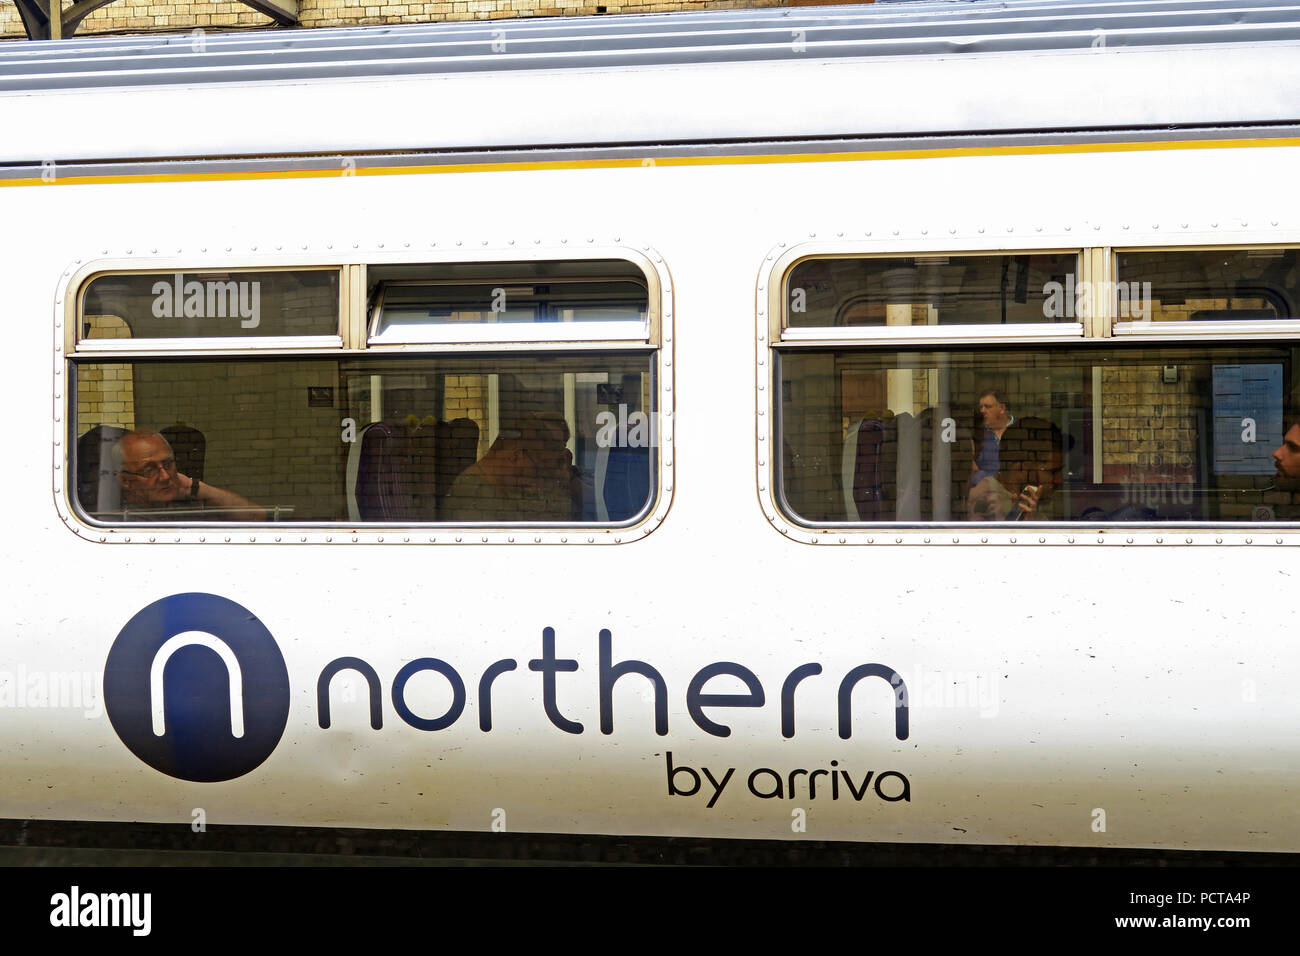 Northern By Arriva logo on train carriage, Warrington Central Station, Cheshire, North West England, UK - Stock Image